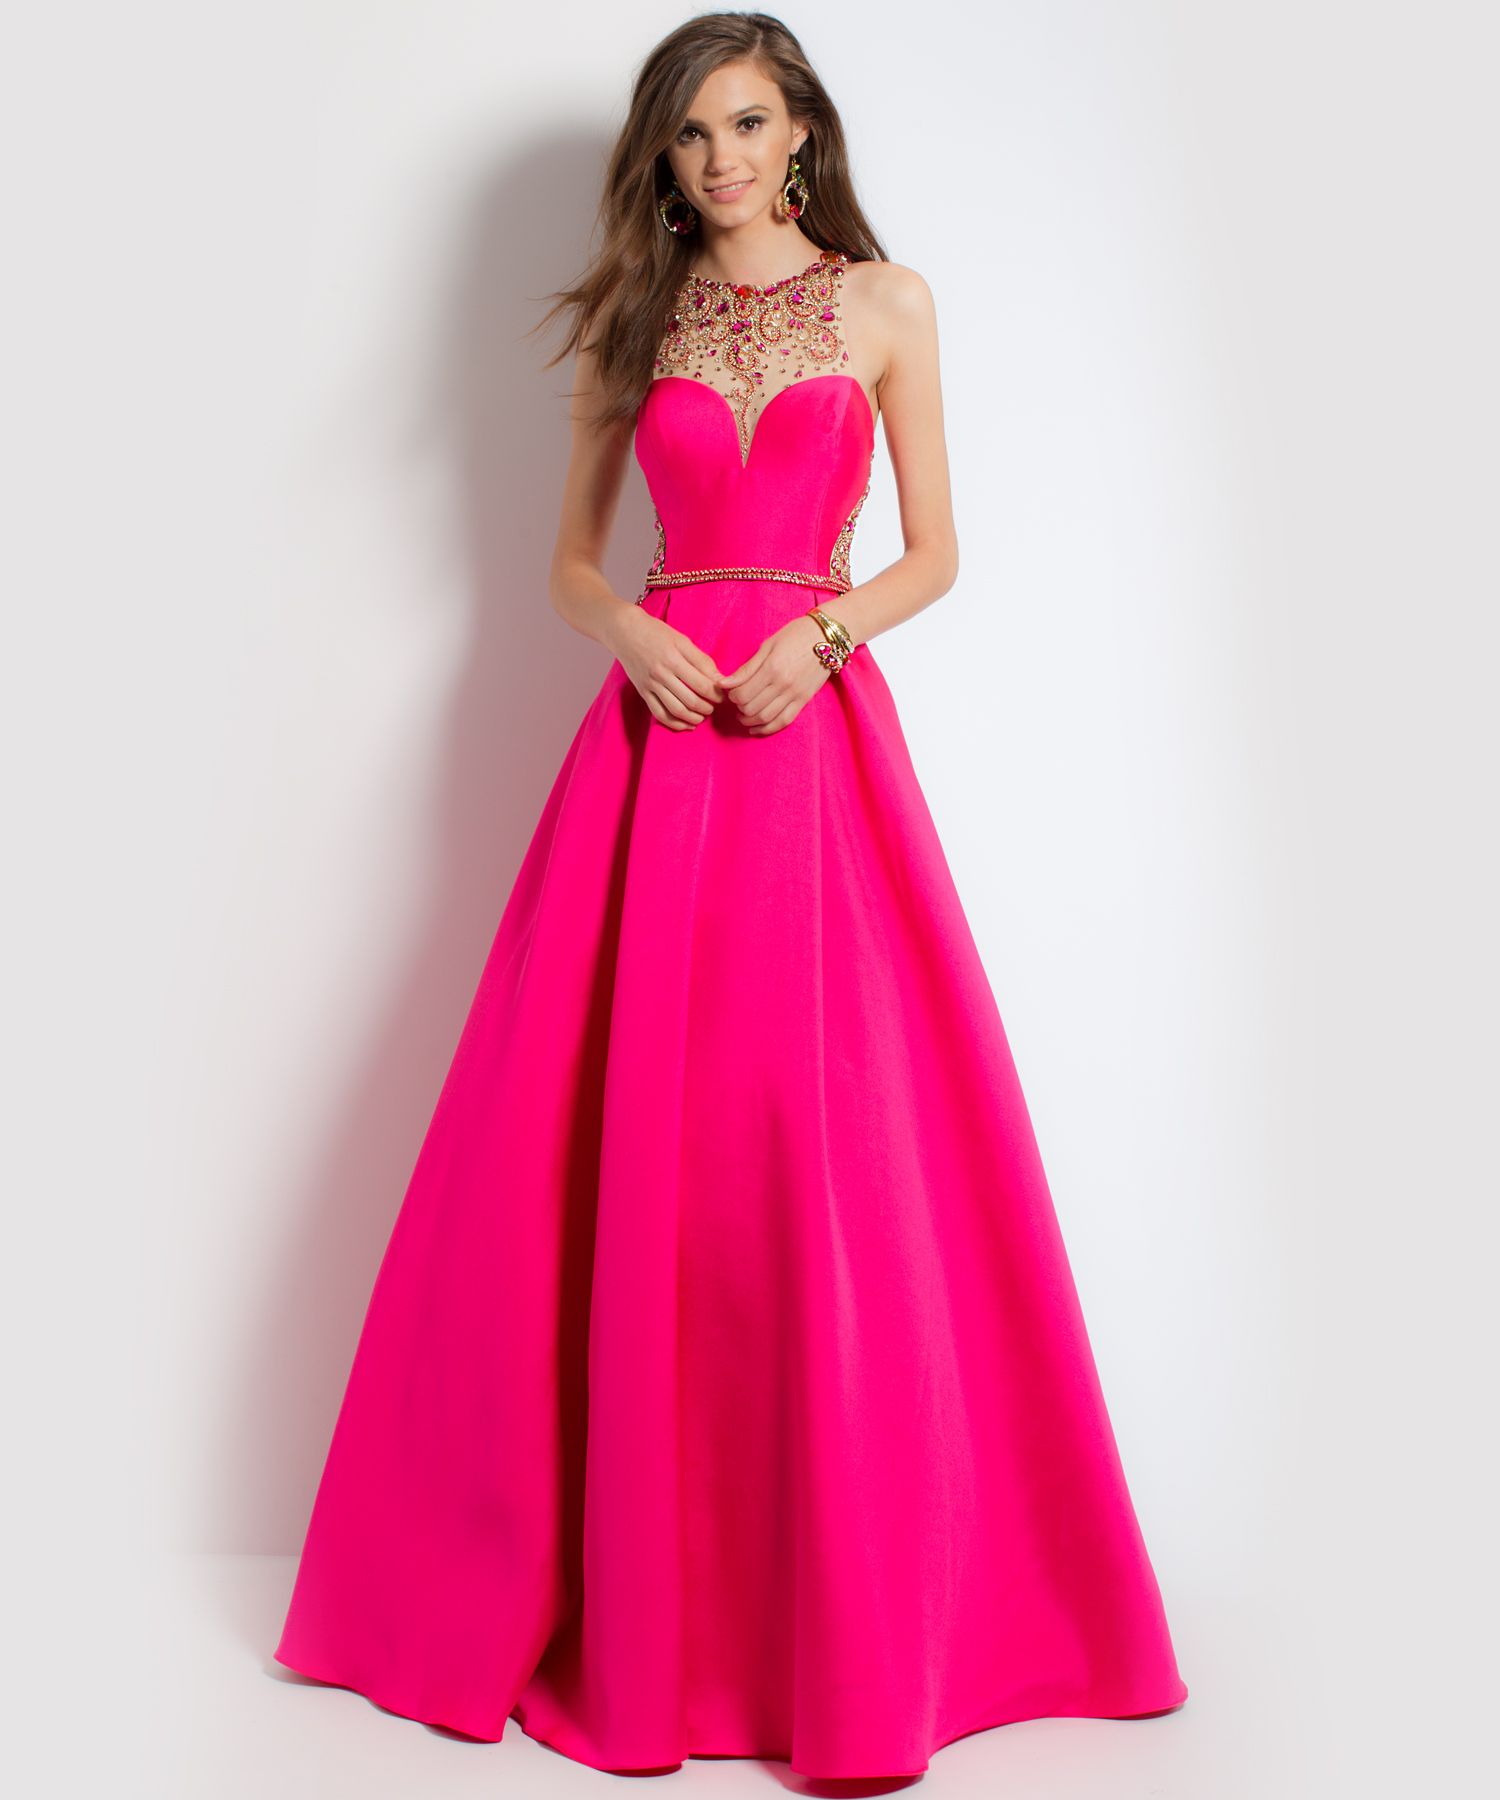 Bright Pink Mikado Ballgown Dress With Illusion Neck. A true ...